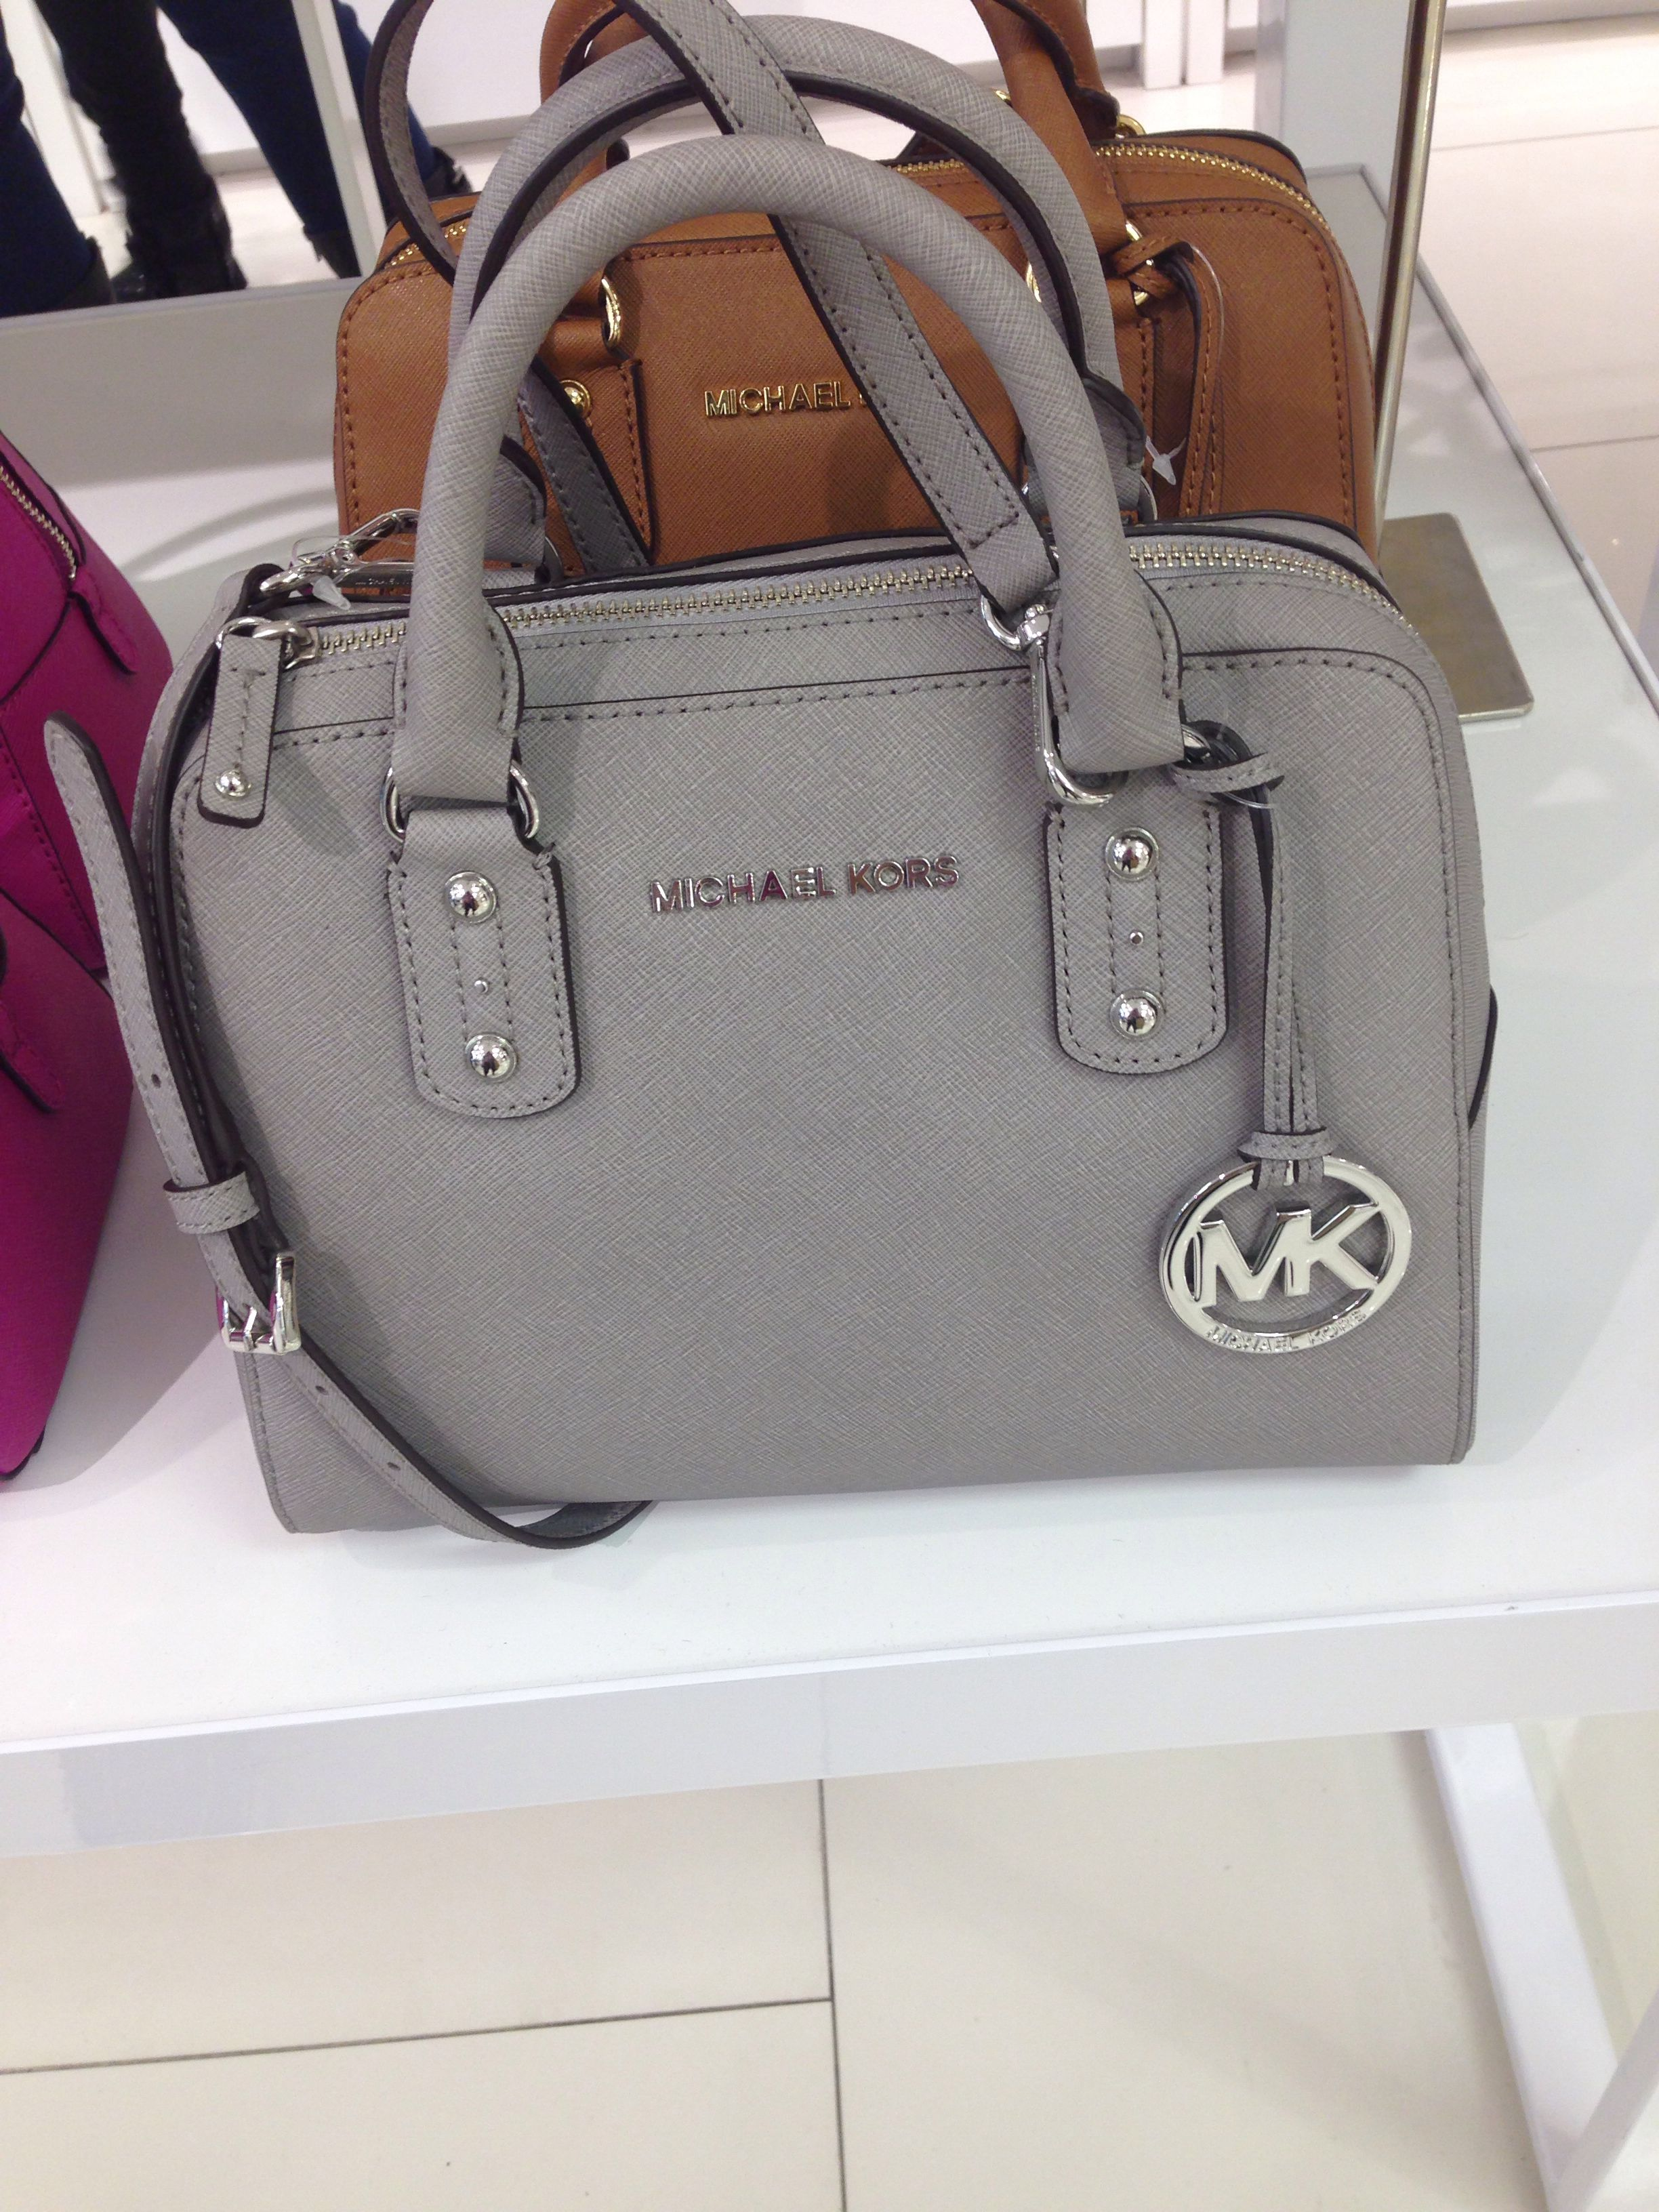 Avis Marque Candy Michael Kors Bag On Arm Candy Bolsos Cartera Bolsos Bolsas Mk